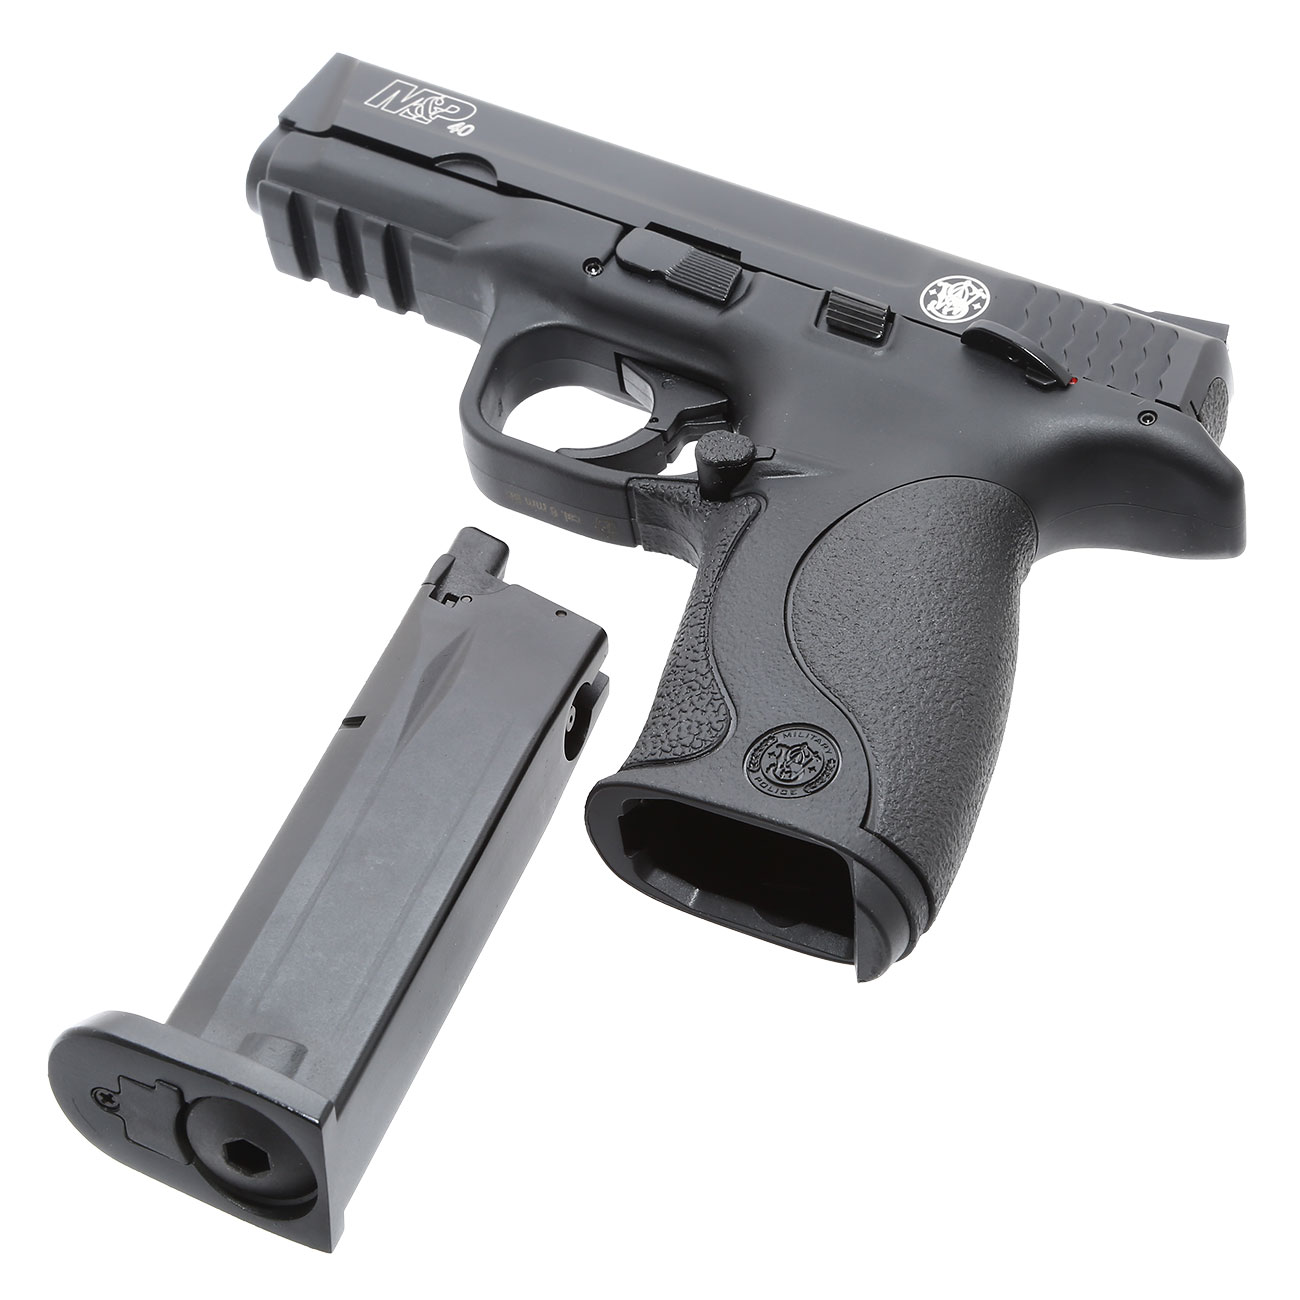 KWC Smith & Wesson M&P40 TS mit Metallschlitten CO2 BlowBack 6mm BB schwarz 6